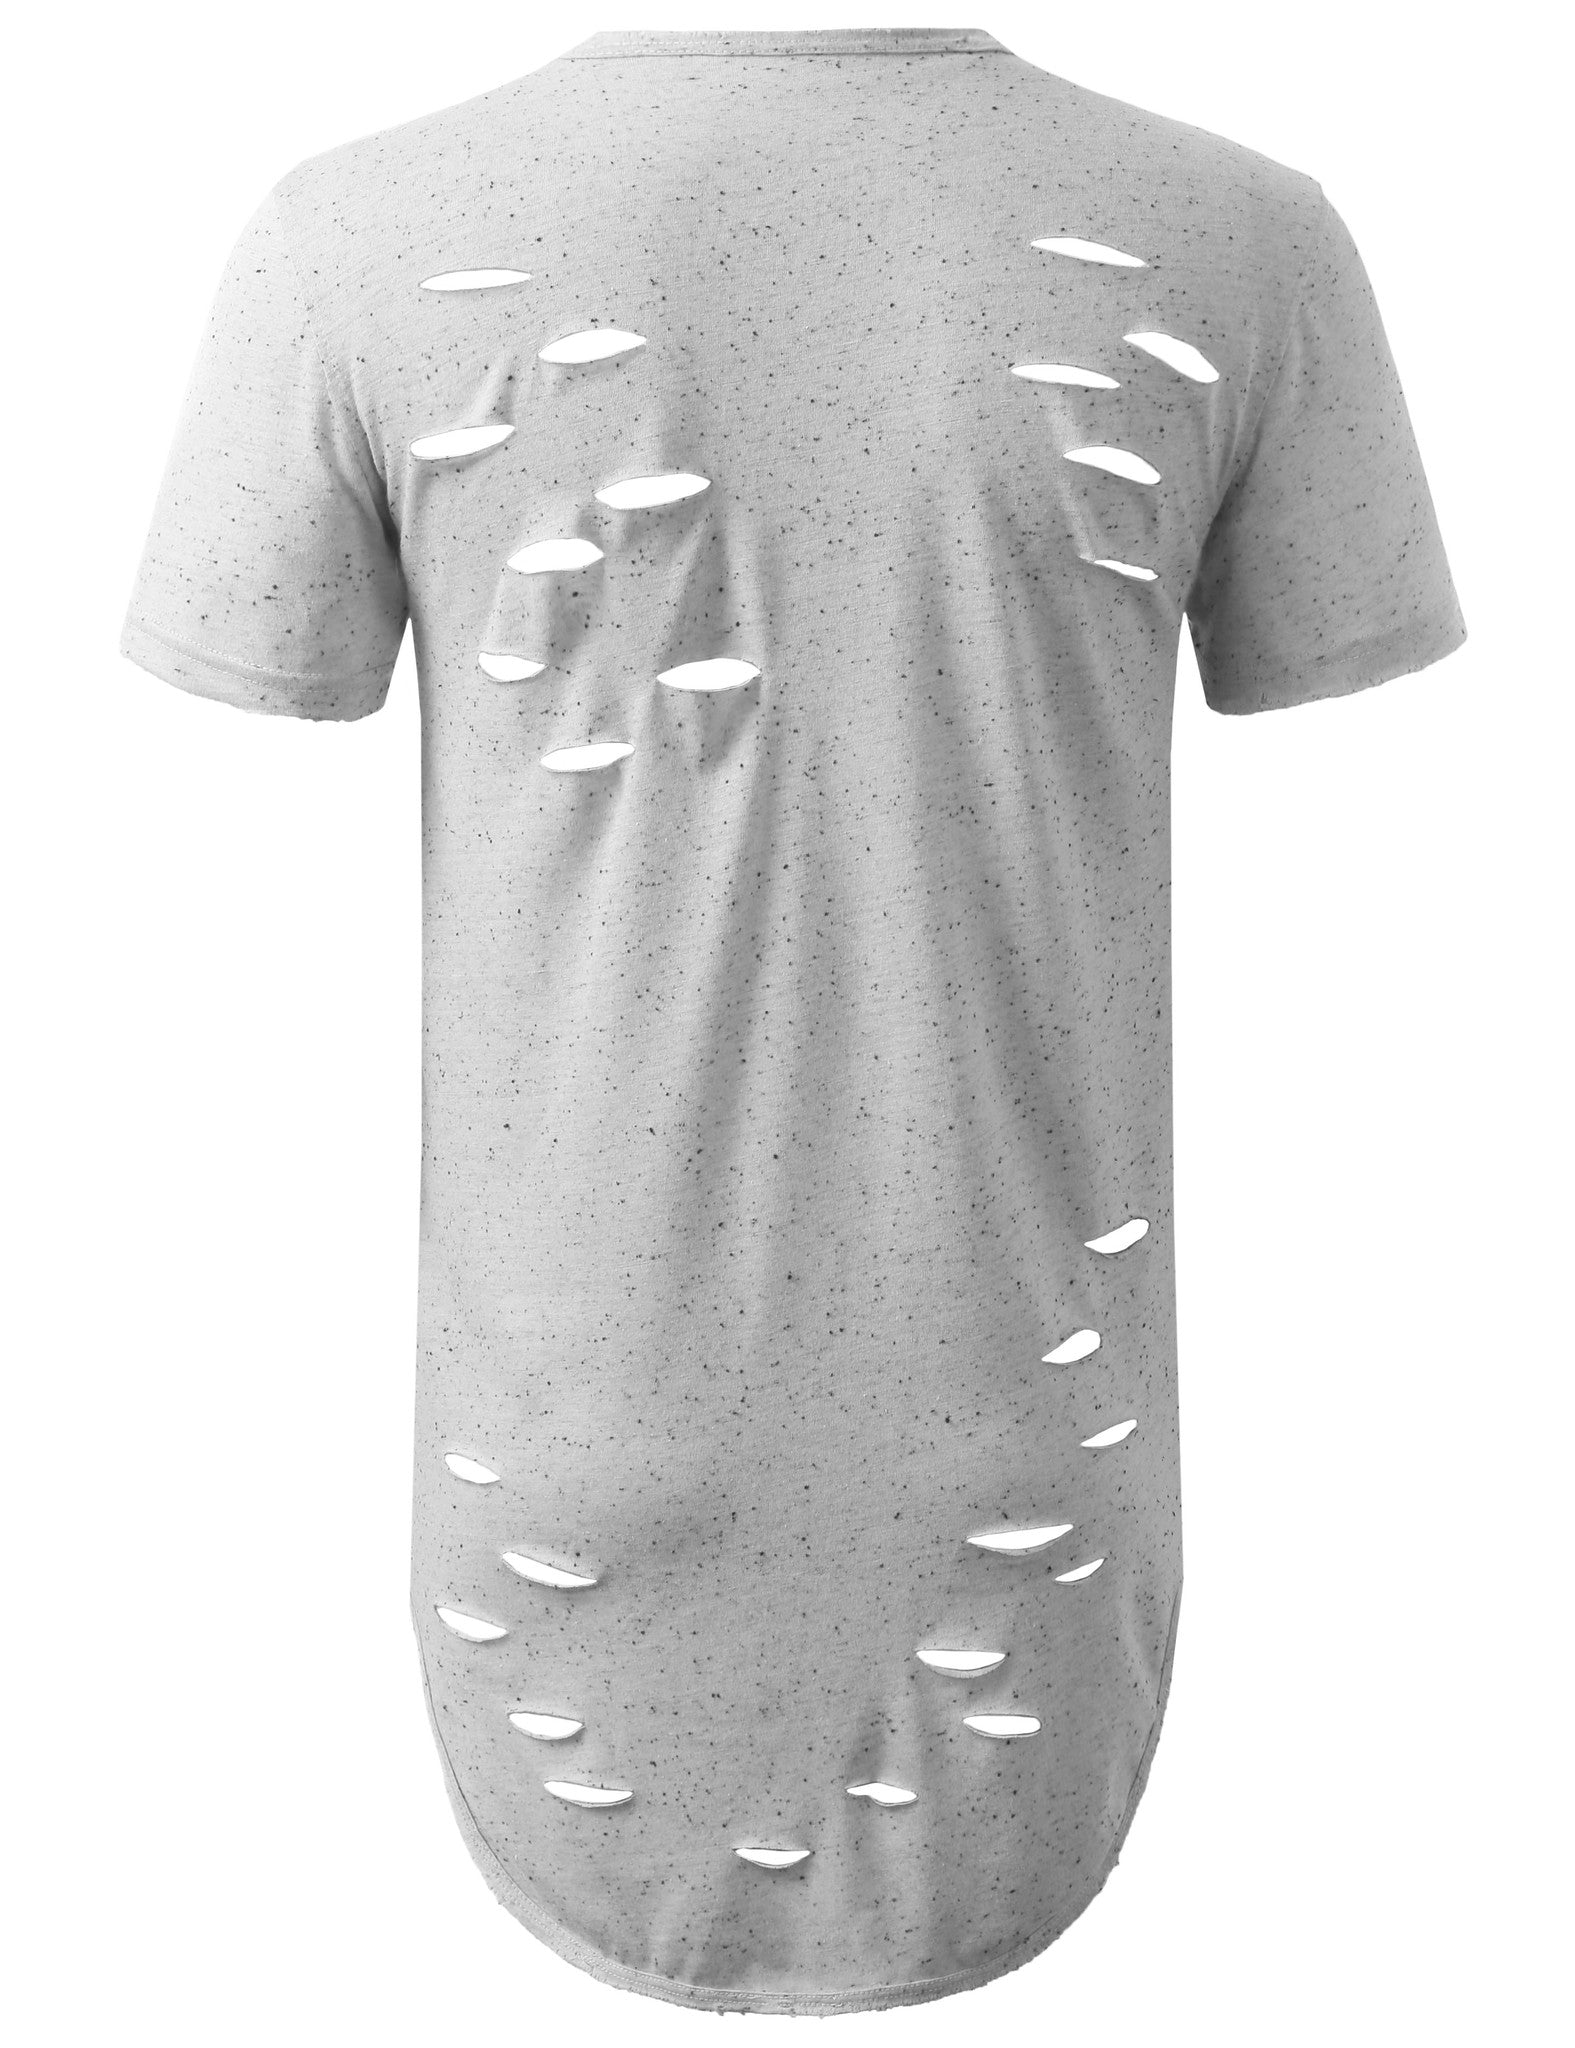 WHITE Ripped Neppy Longline Crewneck Tshirts- URBANCREWS